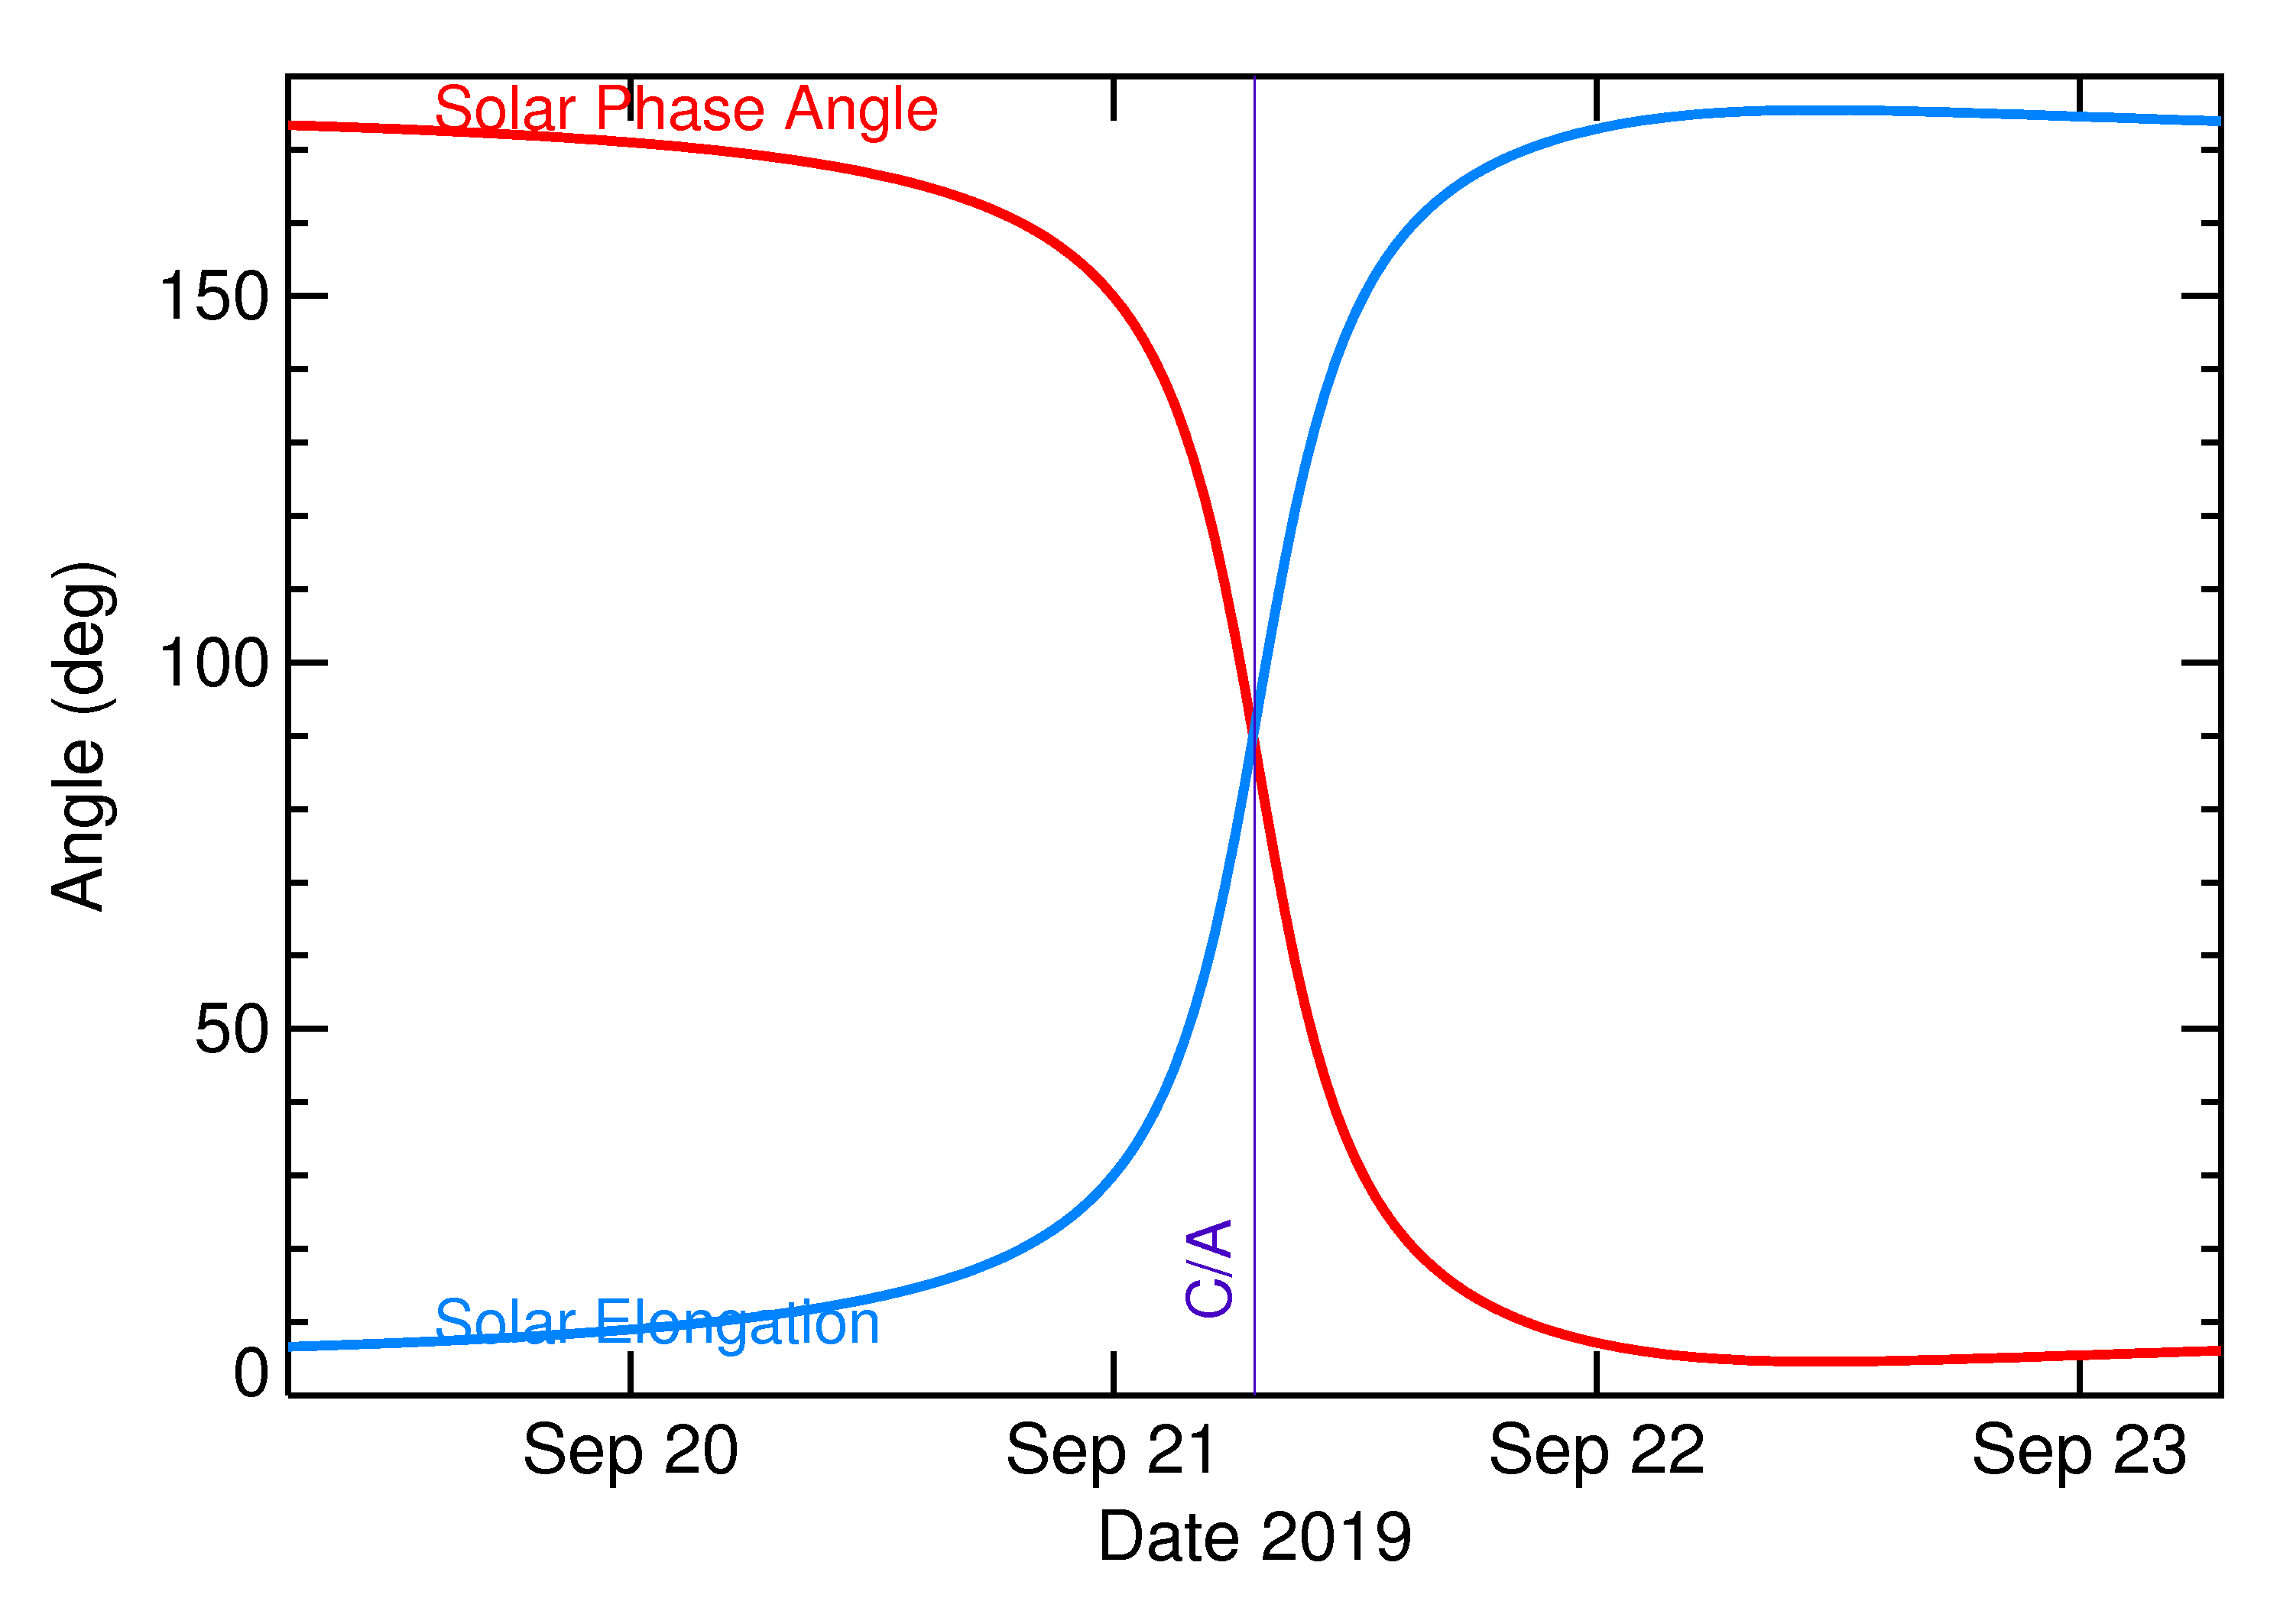 Solar Elongation and Solar Phase Angle of 2019 SS2 in the days around closest approach